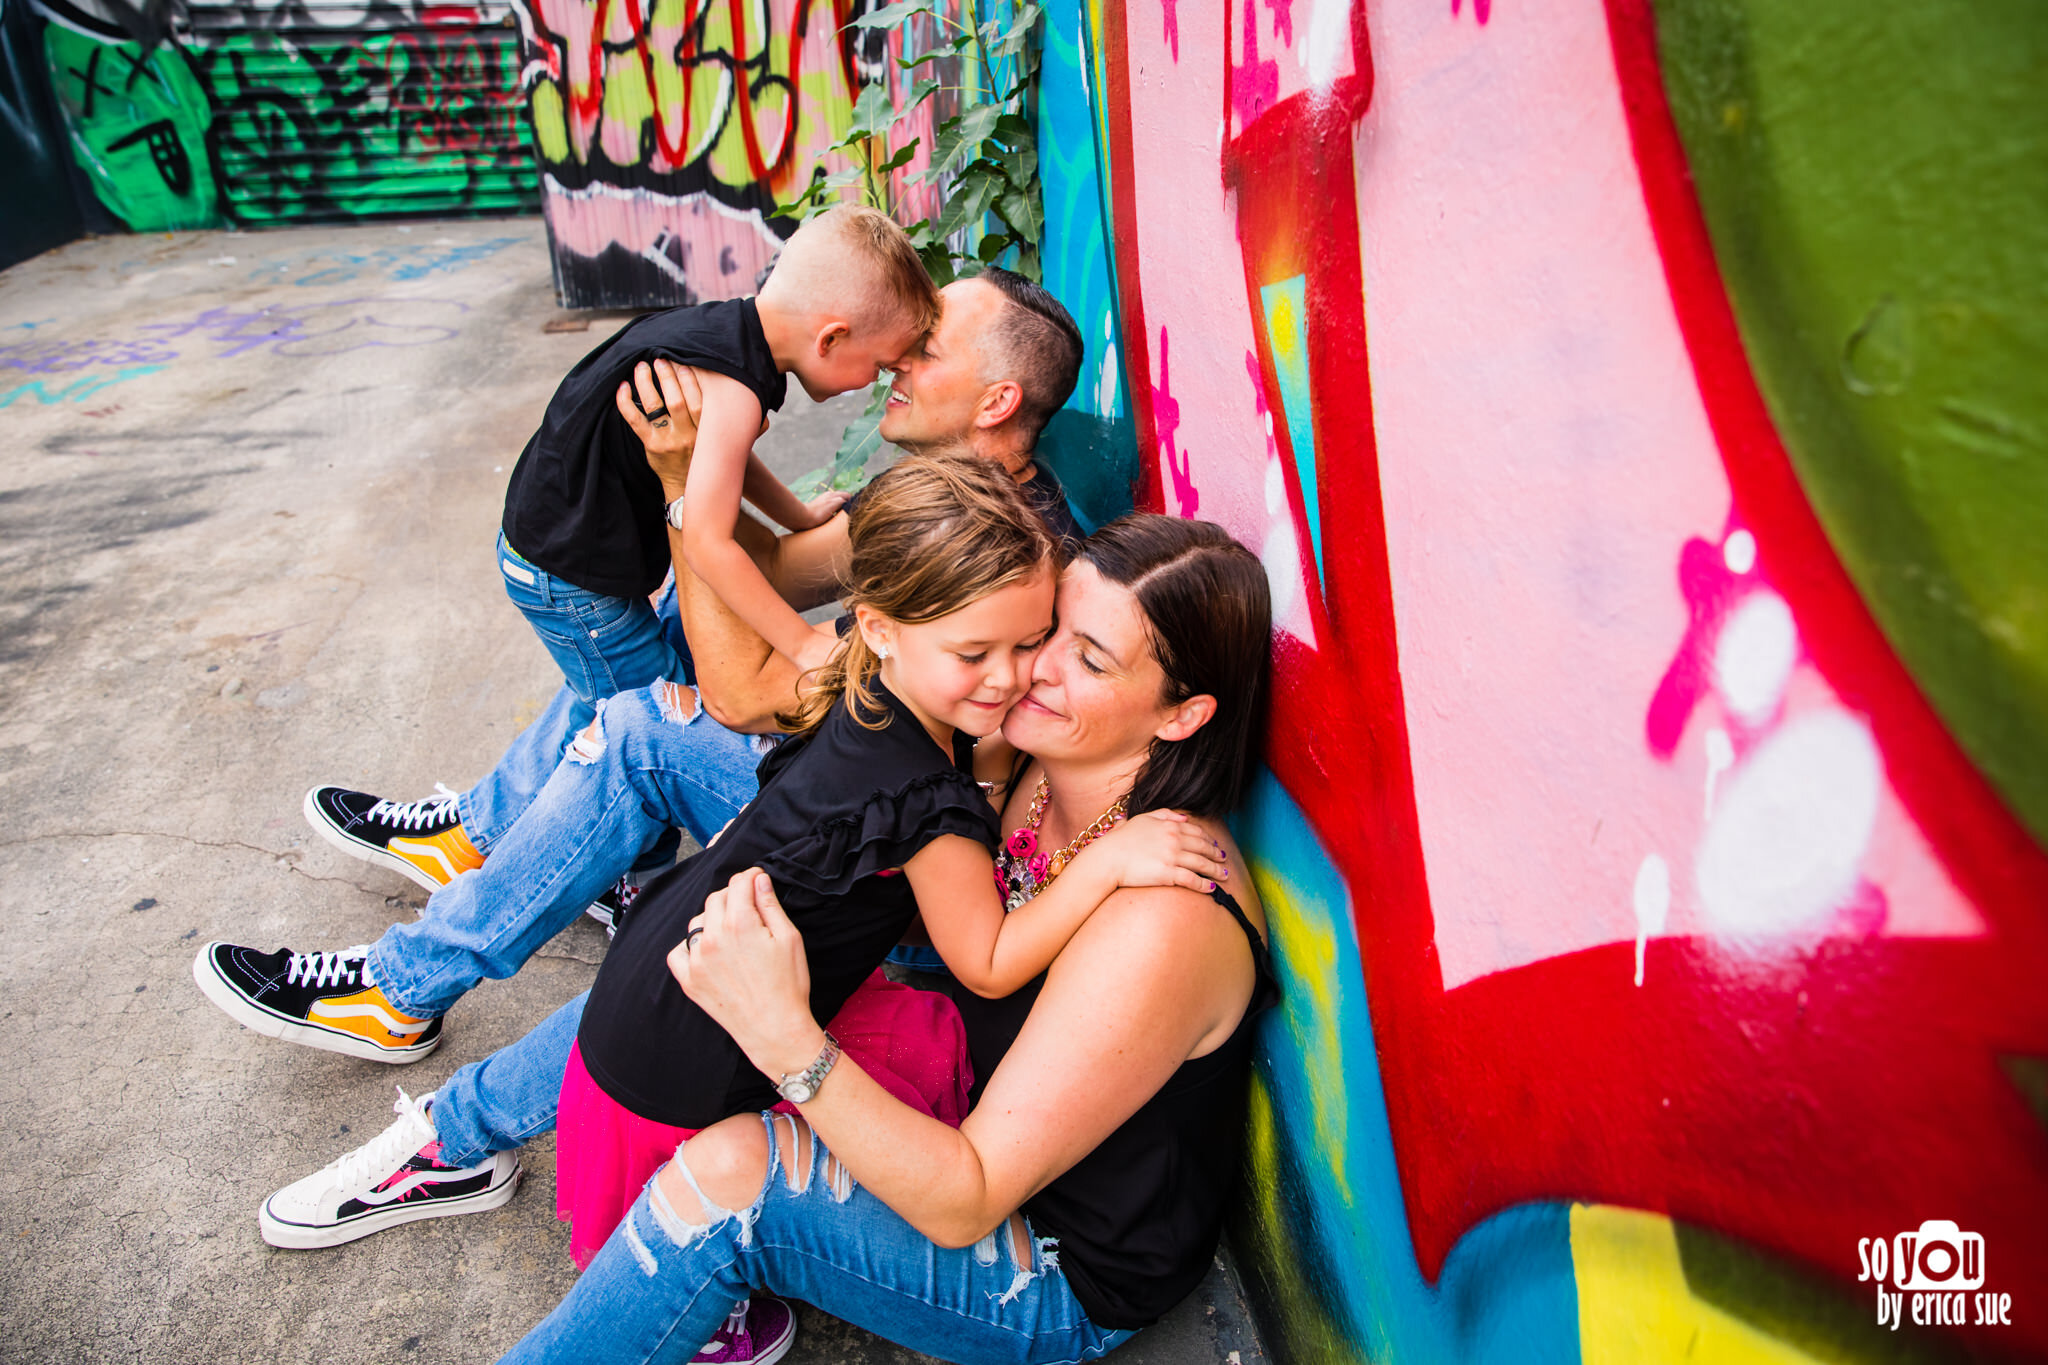 so-you-by-erica-wynwood-walls-lifestyle-family-photographer-session-2106.JPG